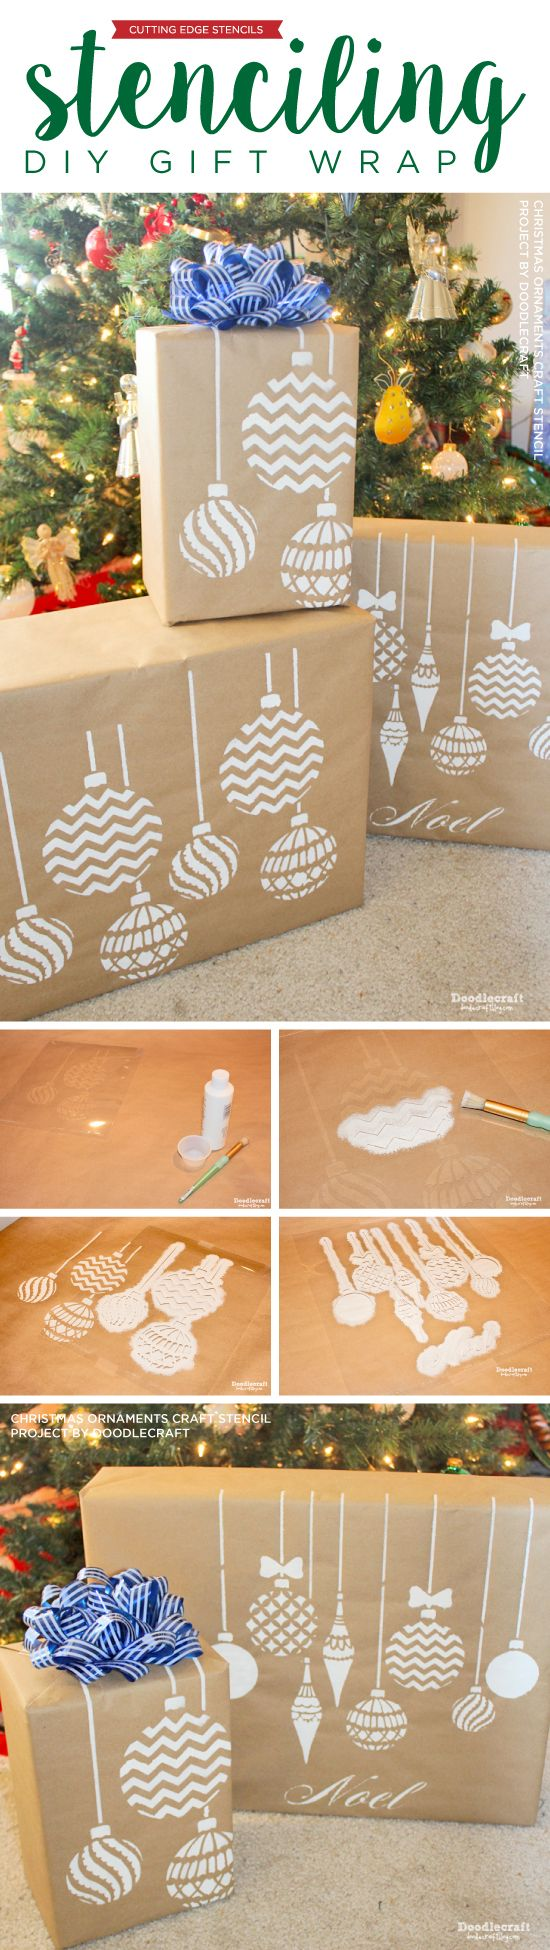 Cutting Edge Stencils shares how to stencil DIY gift wrap using Christmas Ornaments Stencil and Kraft paper.   http://www.cuttingedgestencils.com/diy-christmas-decor-craft-and-furniture-stencils.html?utm_source=JCG&utm_medium=Pinterest&utm_campaign=Christmas%20Ornaments%20Craft%20Stencil